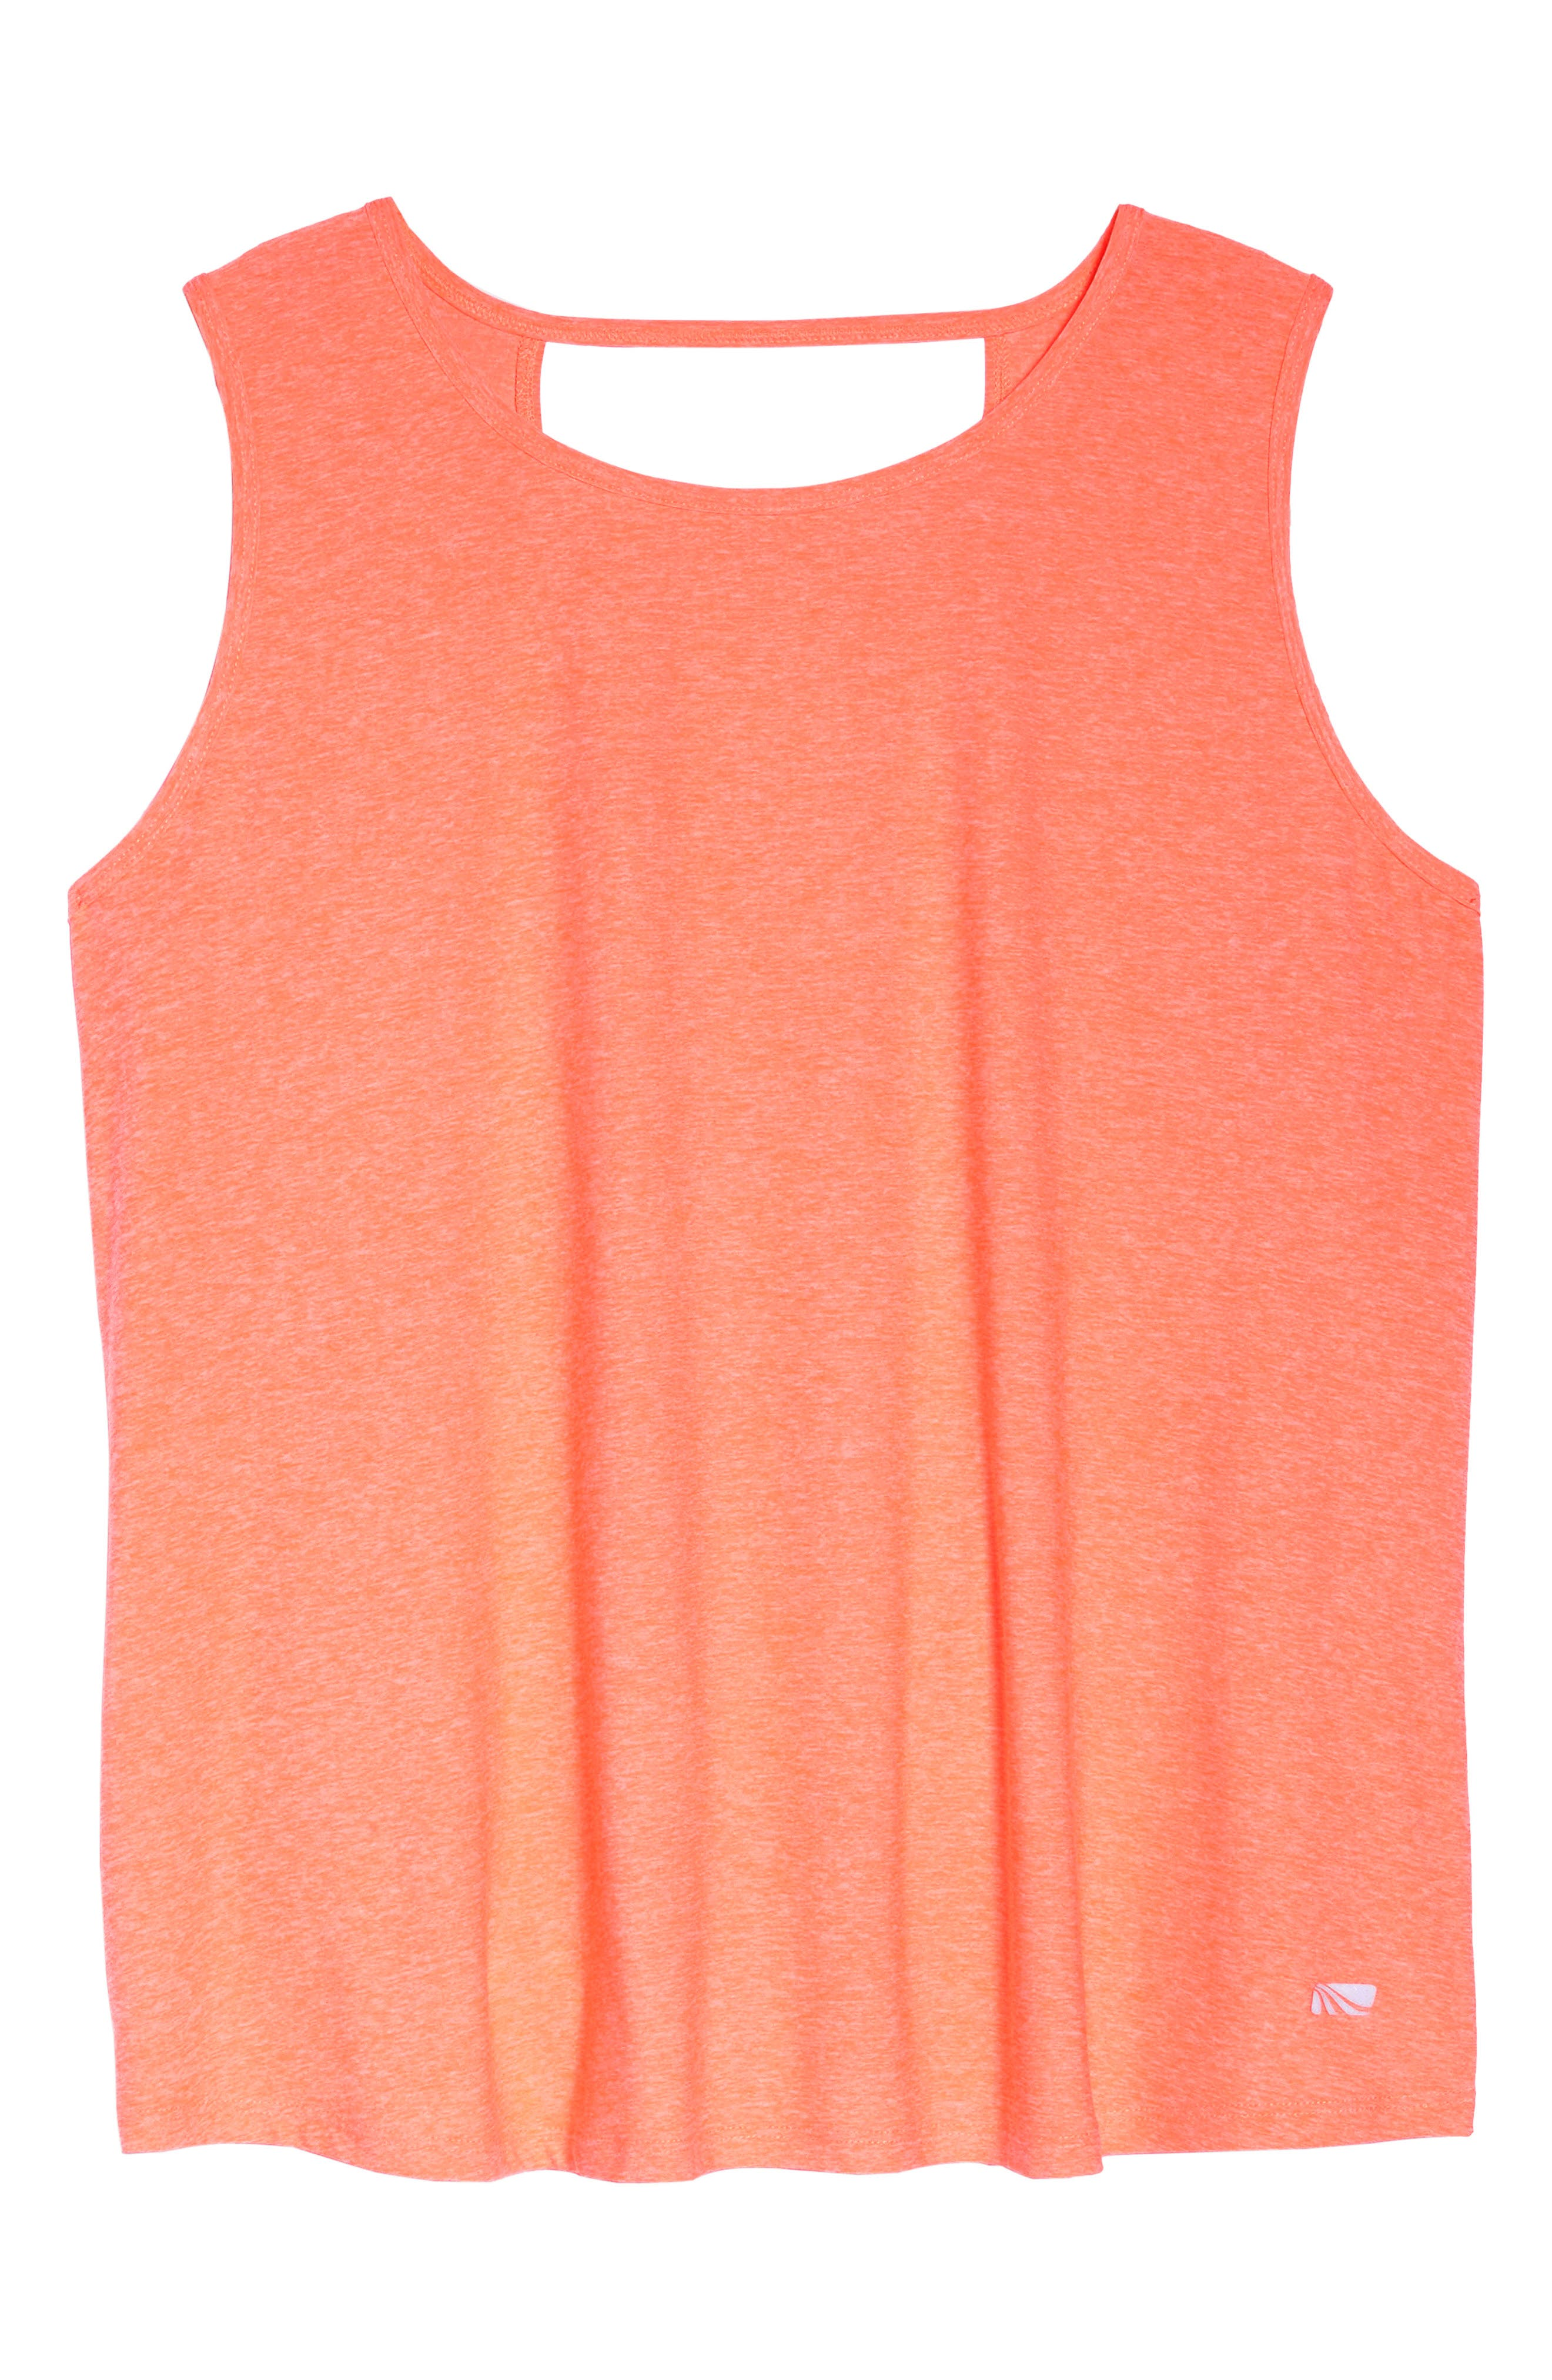 Crossover Tank,                             Alternate thumbnail 6, color,                             Heather Tangerine Fizz